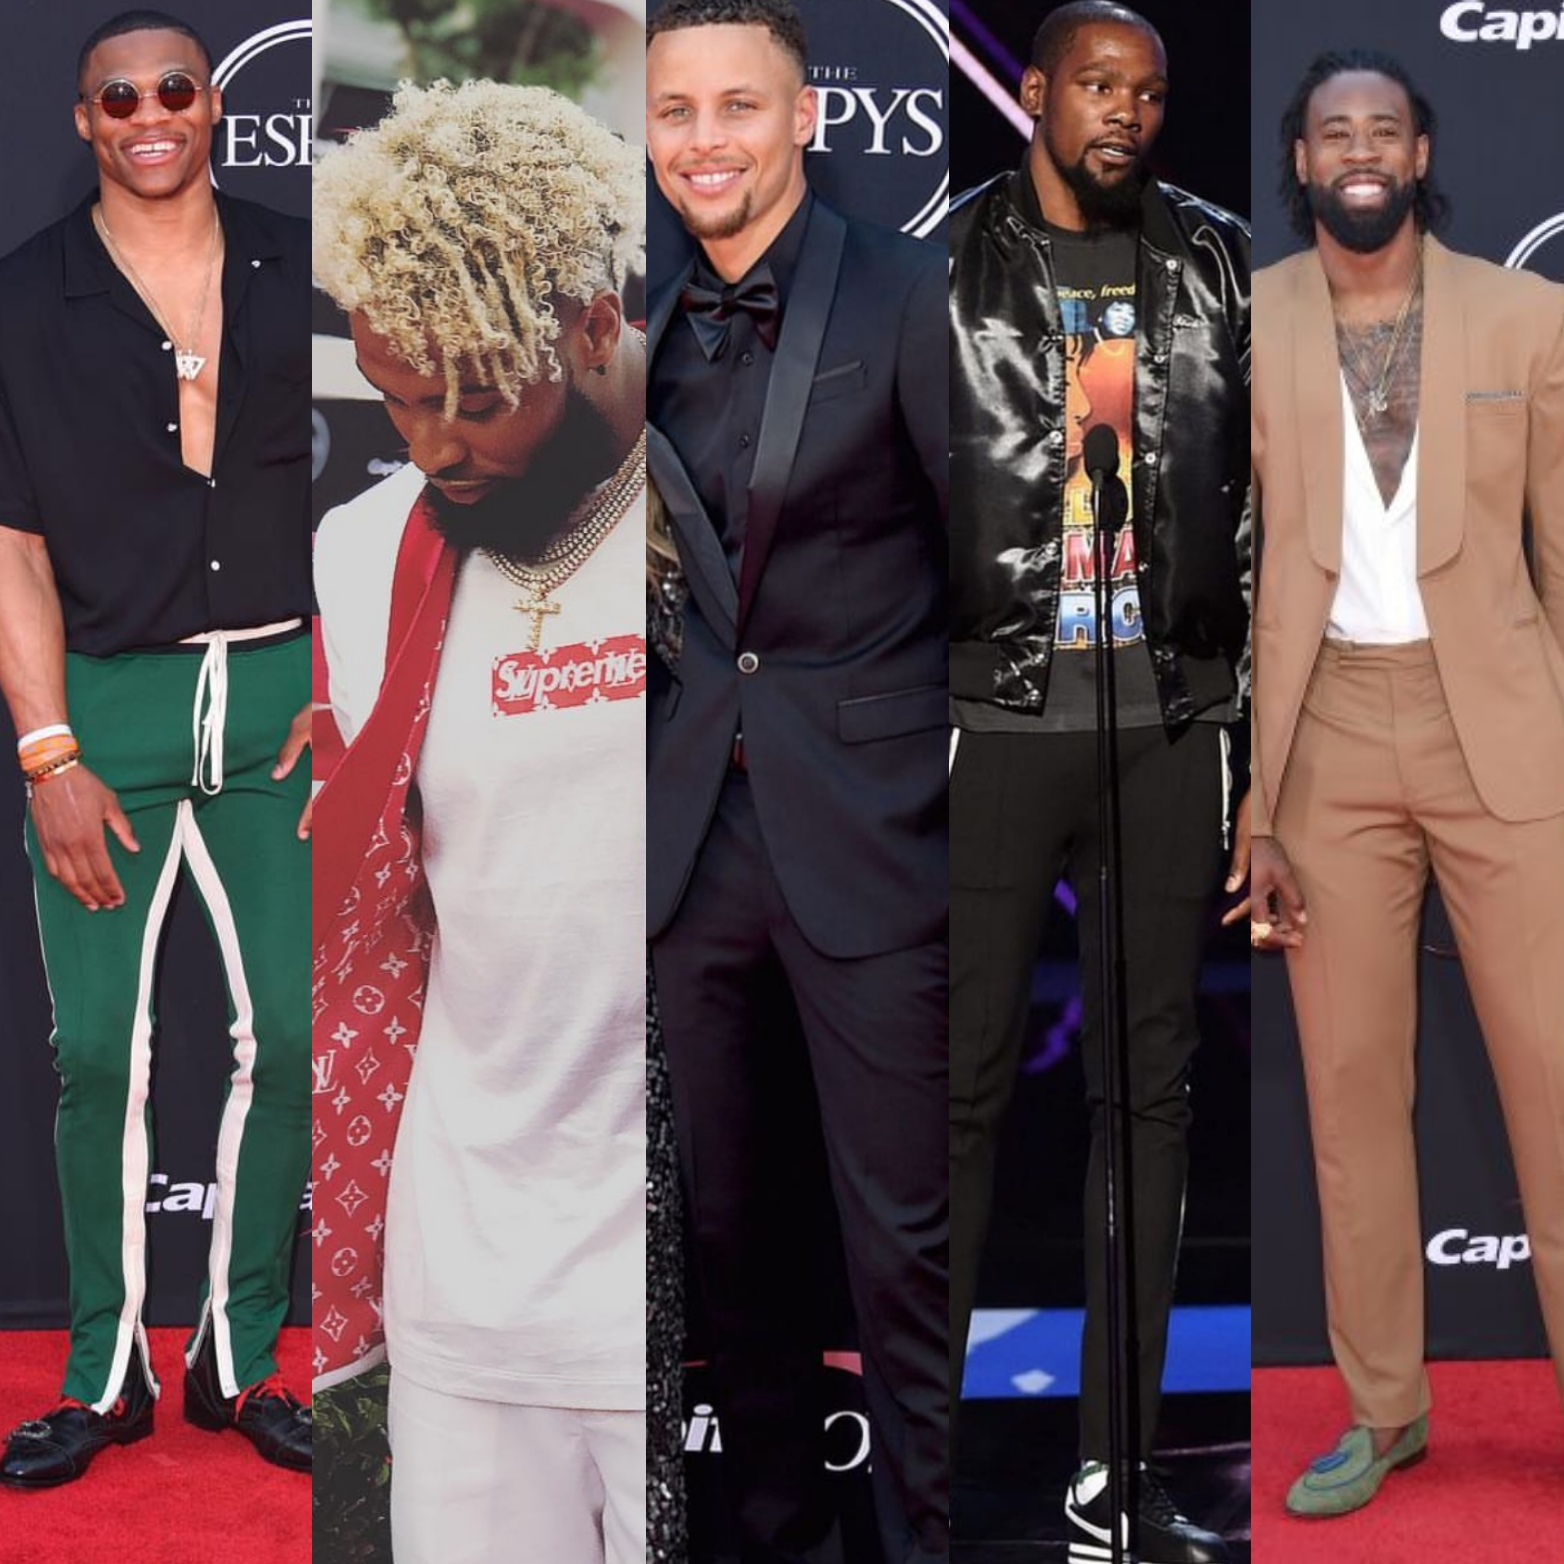 ESPYS 2017 STYLE: Stephen Curry, Russell Westbrook, Odell Beckham Jr.  & More